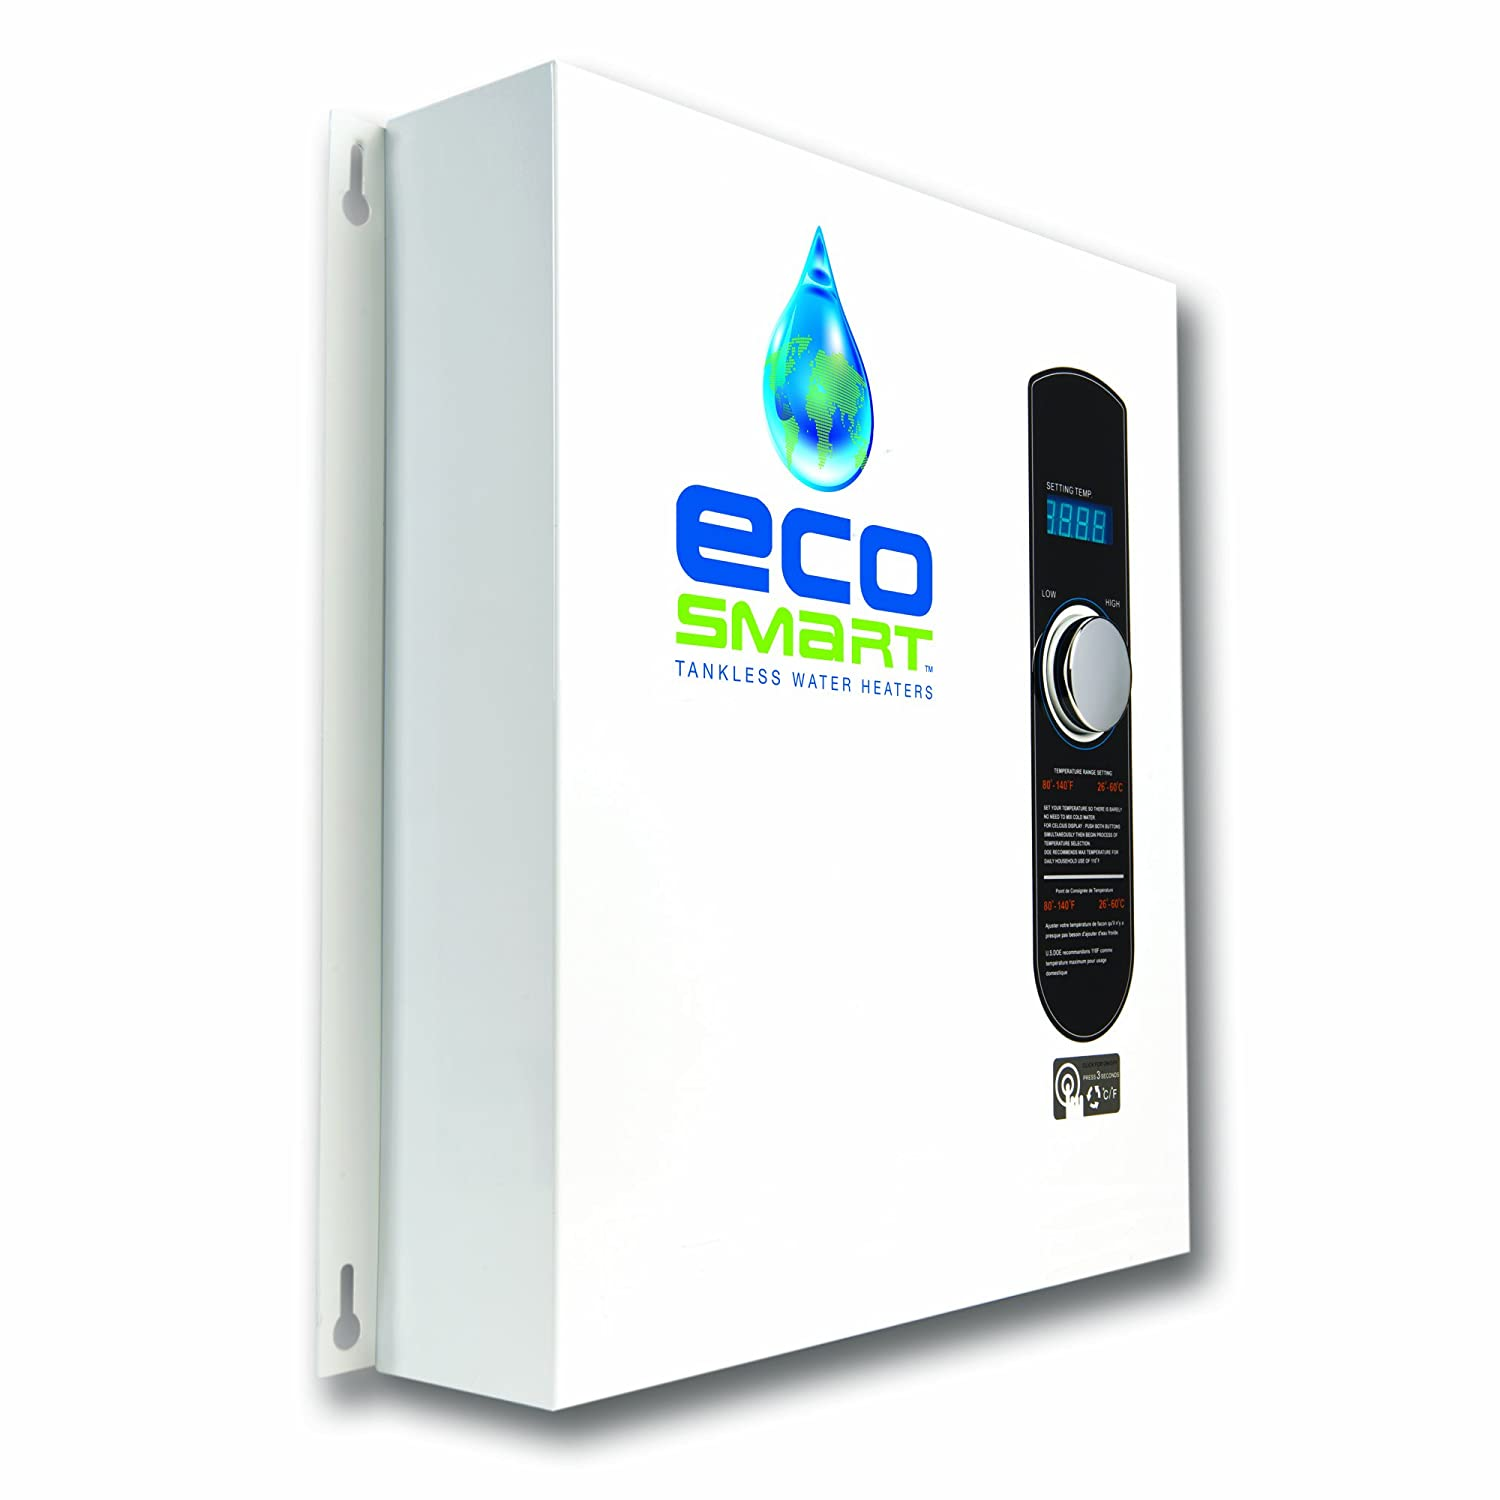 Ecosmart eco 27 electric tankless water heater 27 kw at 240 volts 112 5 amps with patented self modulating technology amazon com